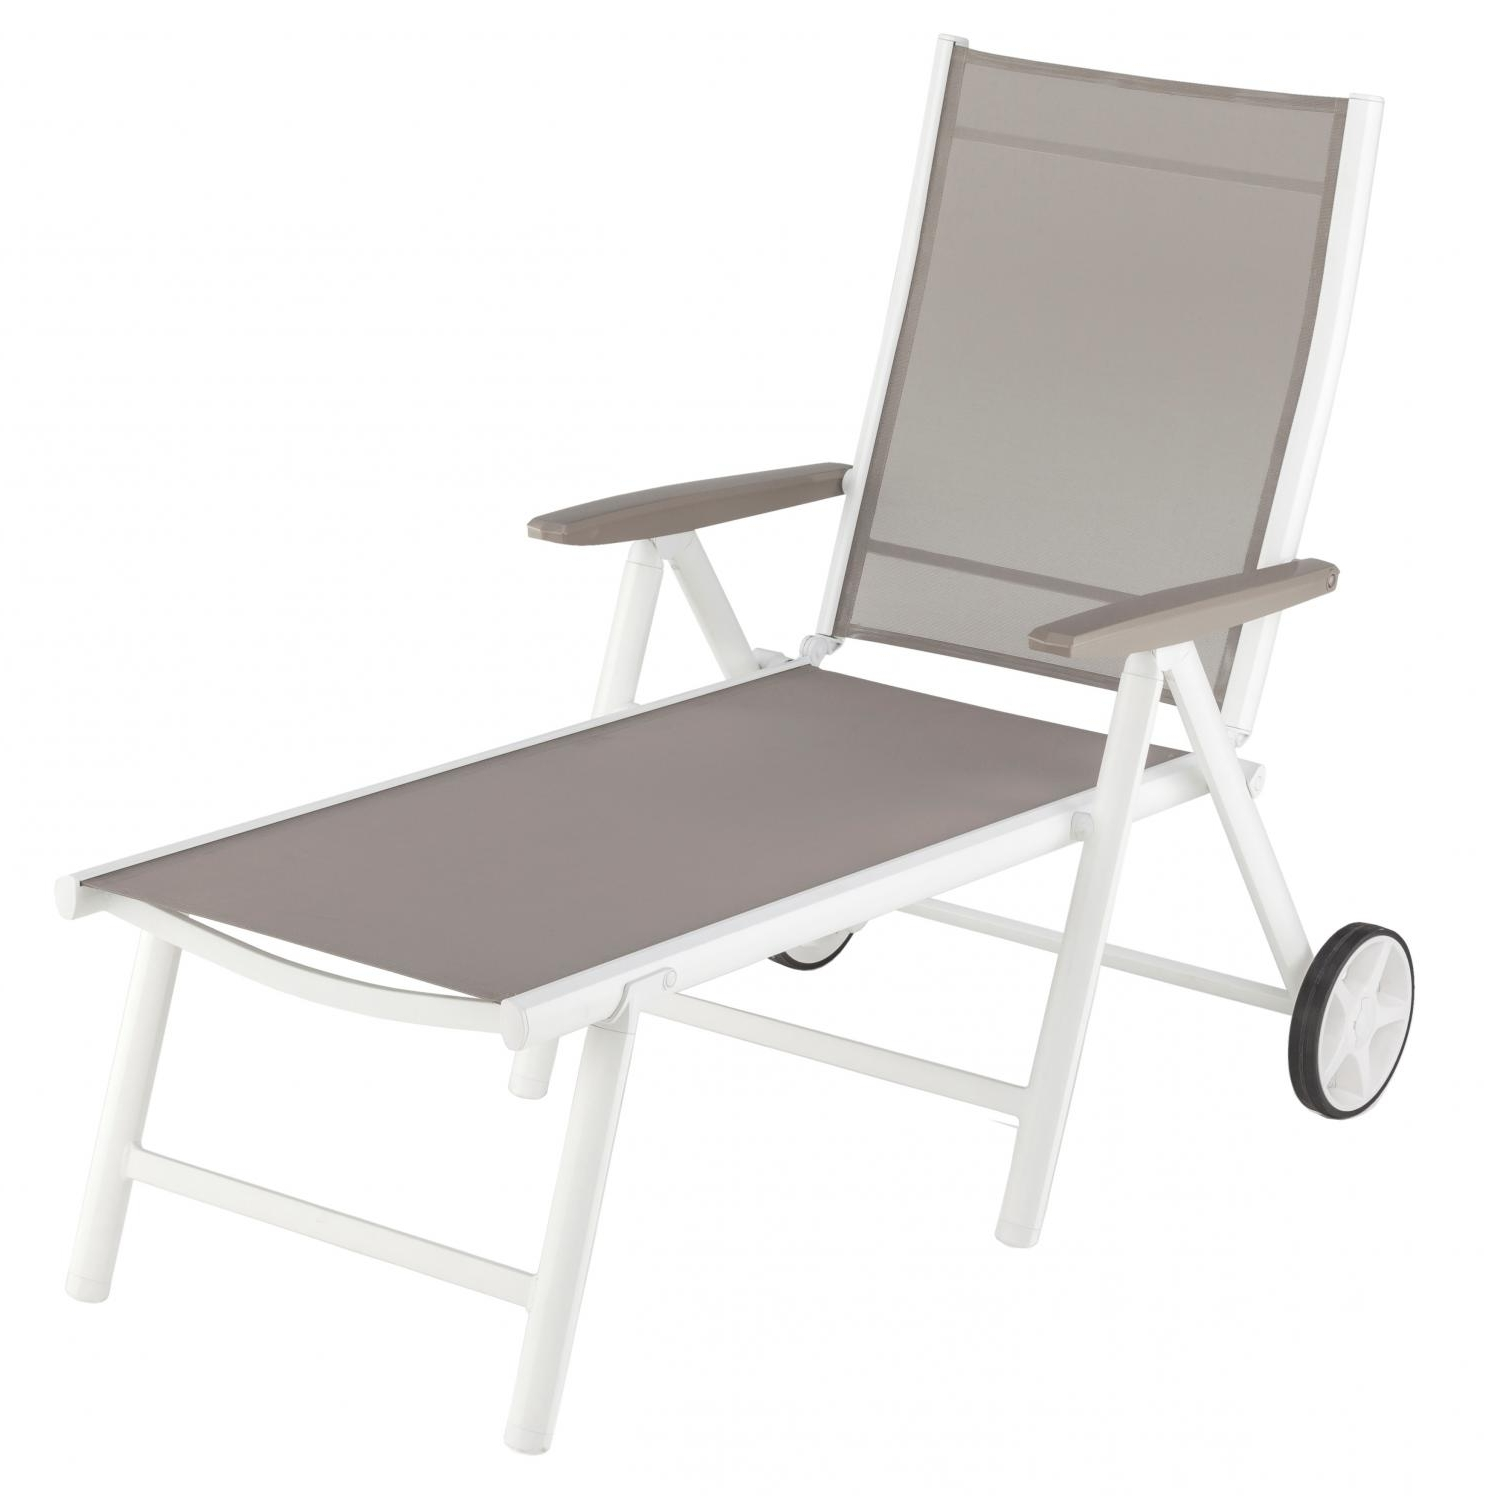 Widely Used Kettler Vista Aluminum Patio Chaise Lounge – Gray : Ultimate Patio Regarding Kettler Chaise Lounge Chairs (View 15 of 15)